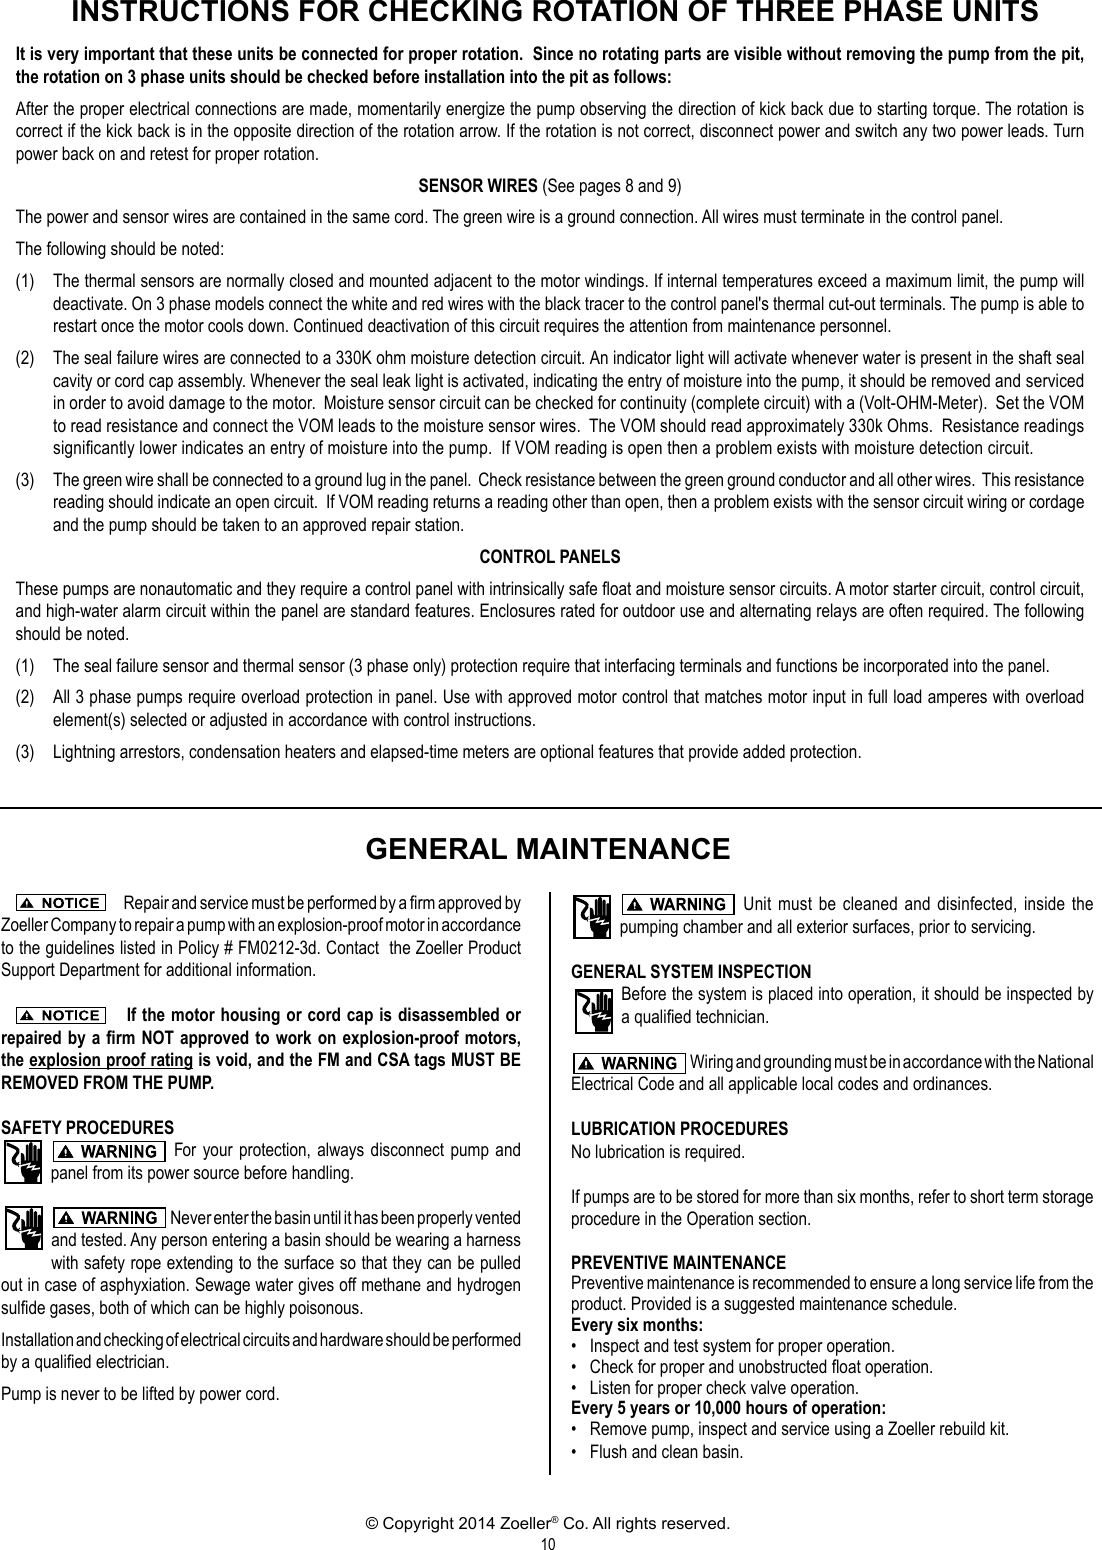 548011 2 Zoeller X292 Owners Manual Pump Wiring Page 10 Of 12